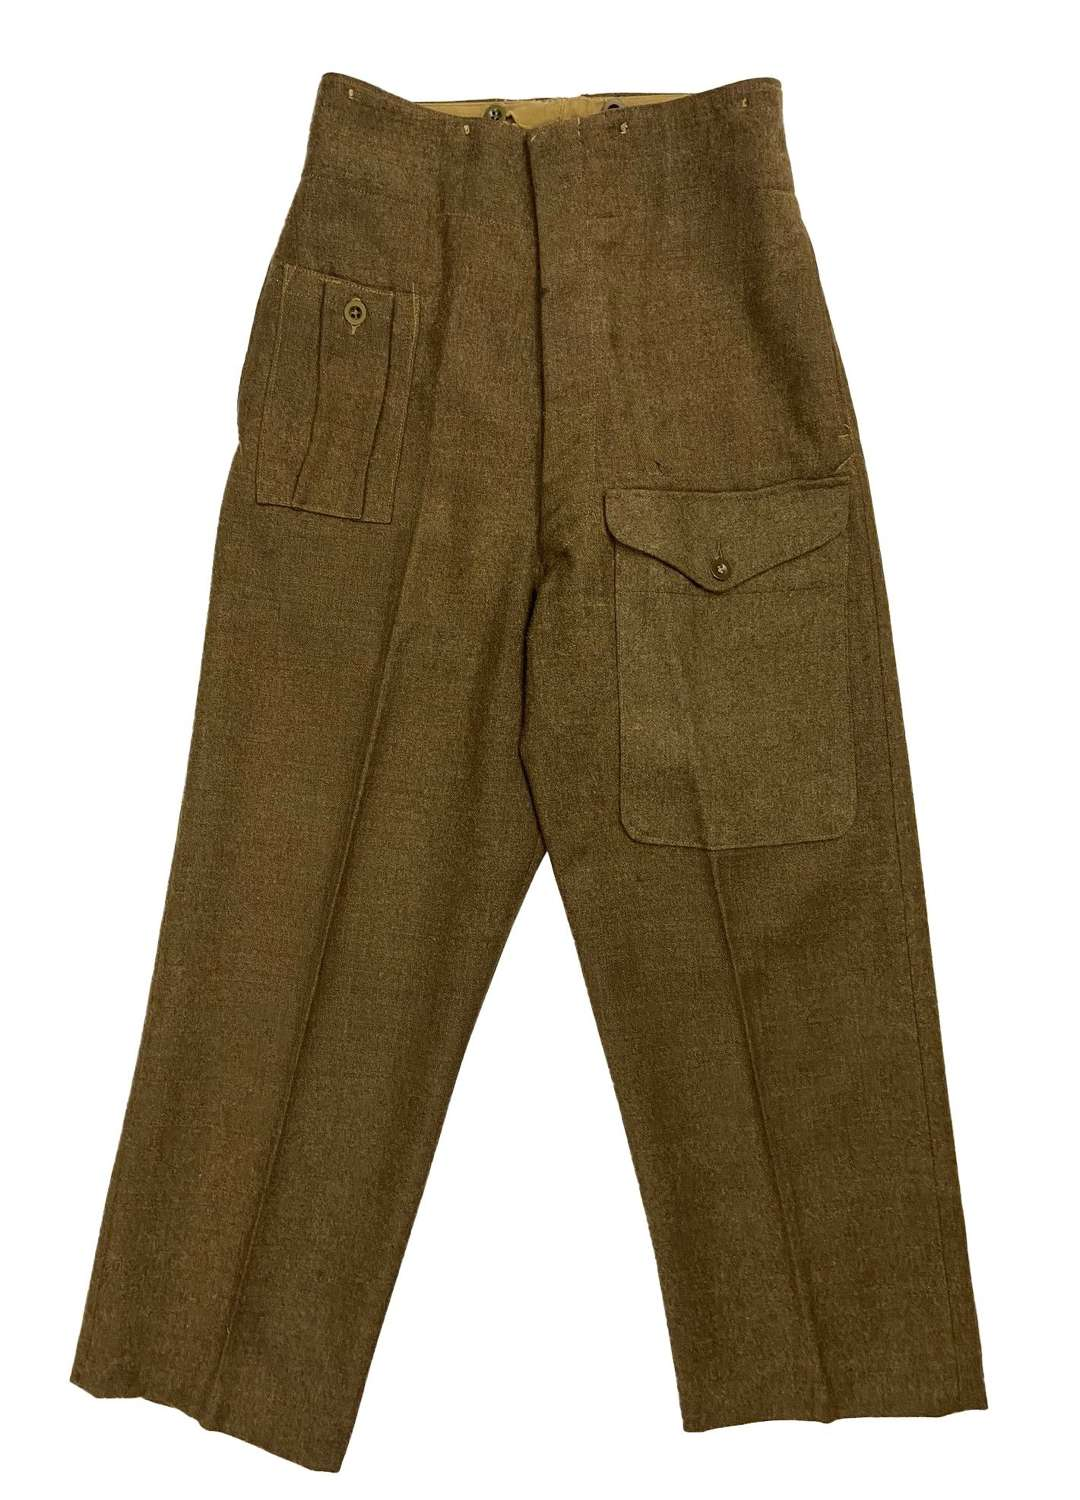 Original 1945 Dated 1940 Pattern (Austerity) Battledress Trousers - 10